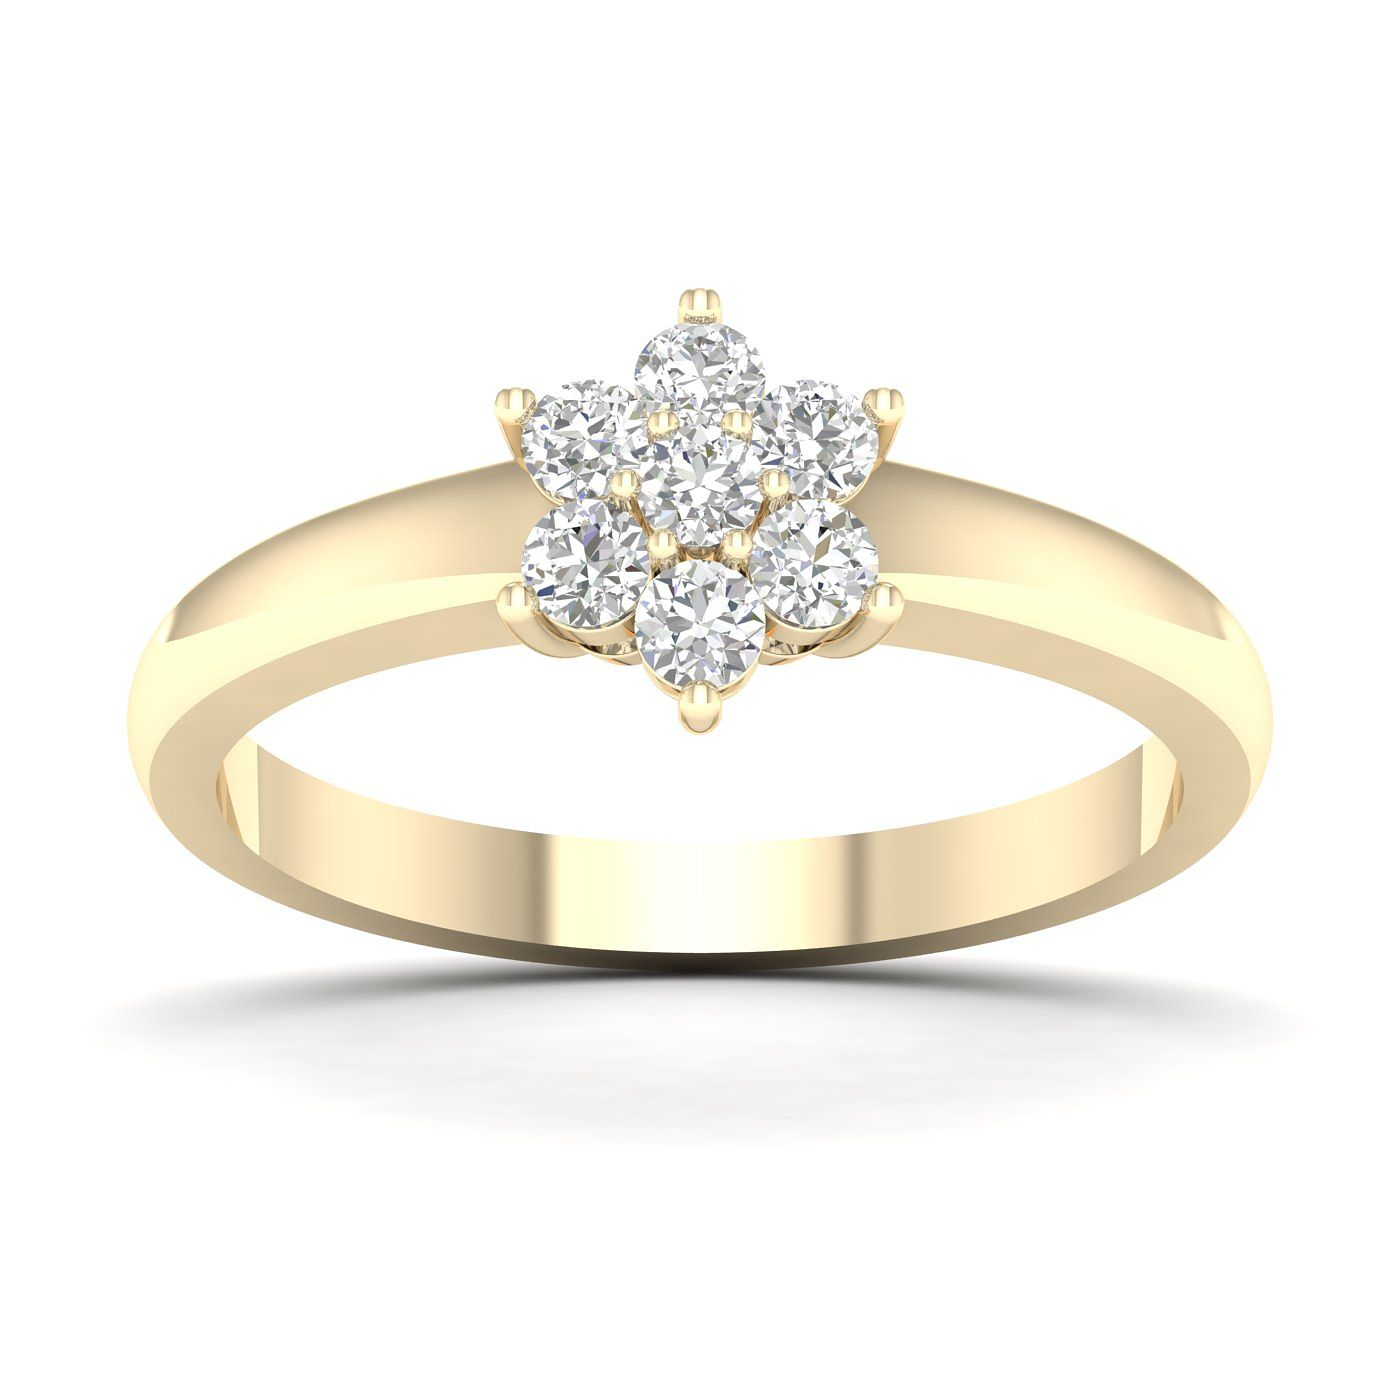 9ct Yellow Gold & 1/2ct Diamond Floral Cluster Ring - Product number 5054842